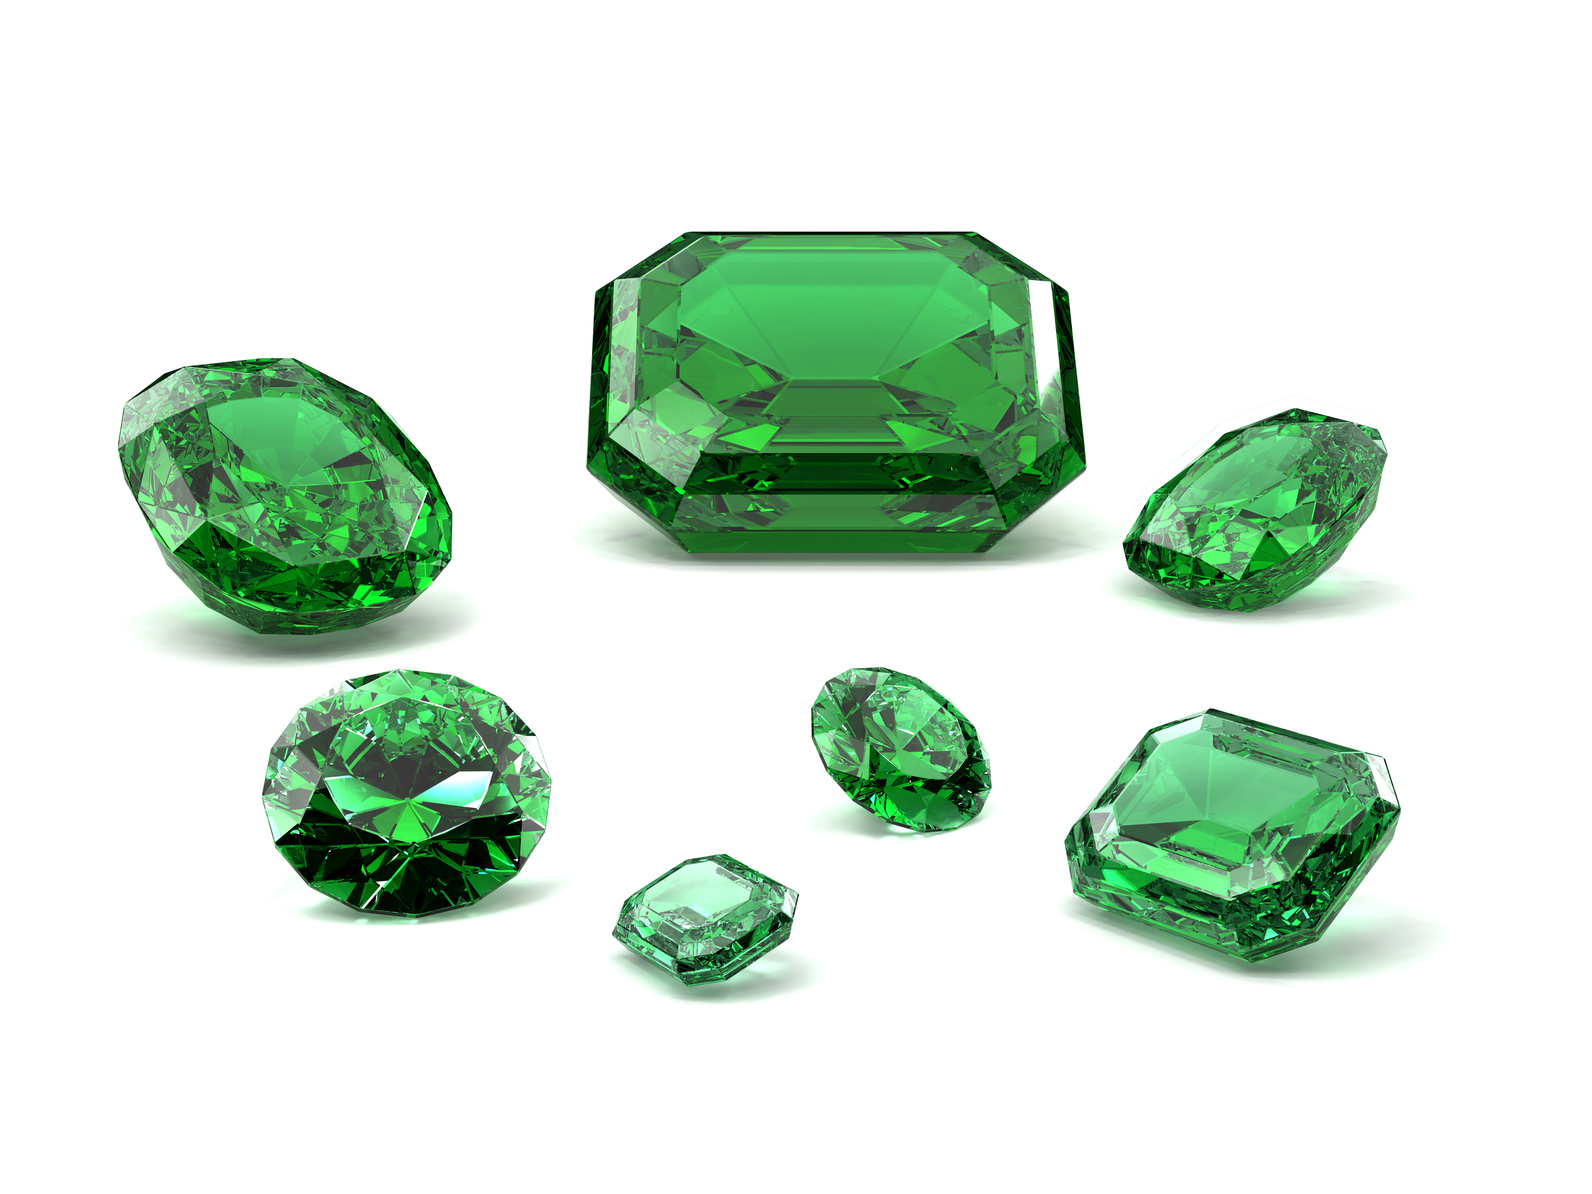 Emerald Meanings, Properties and Uses